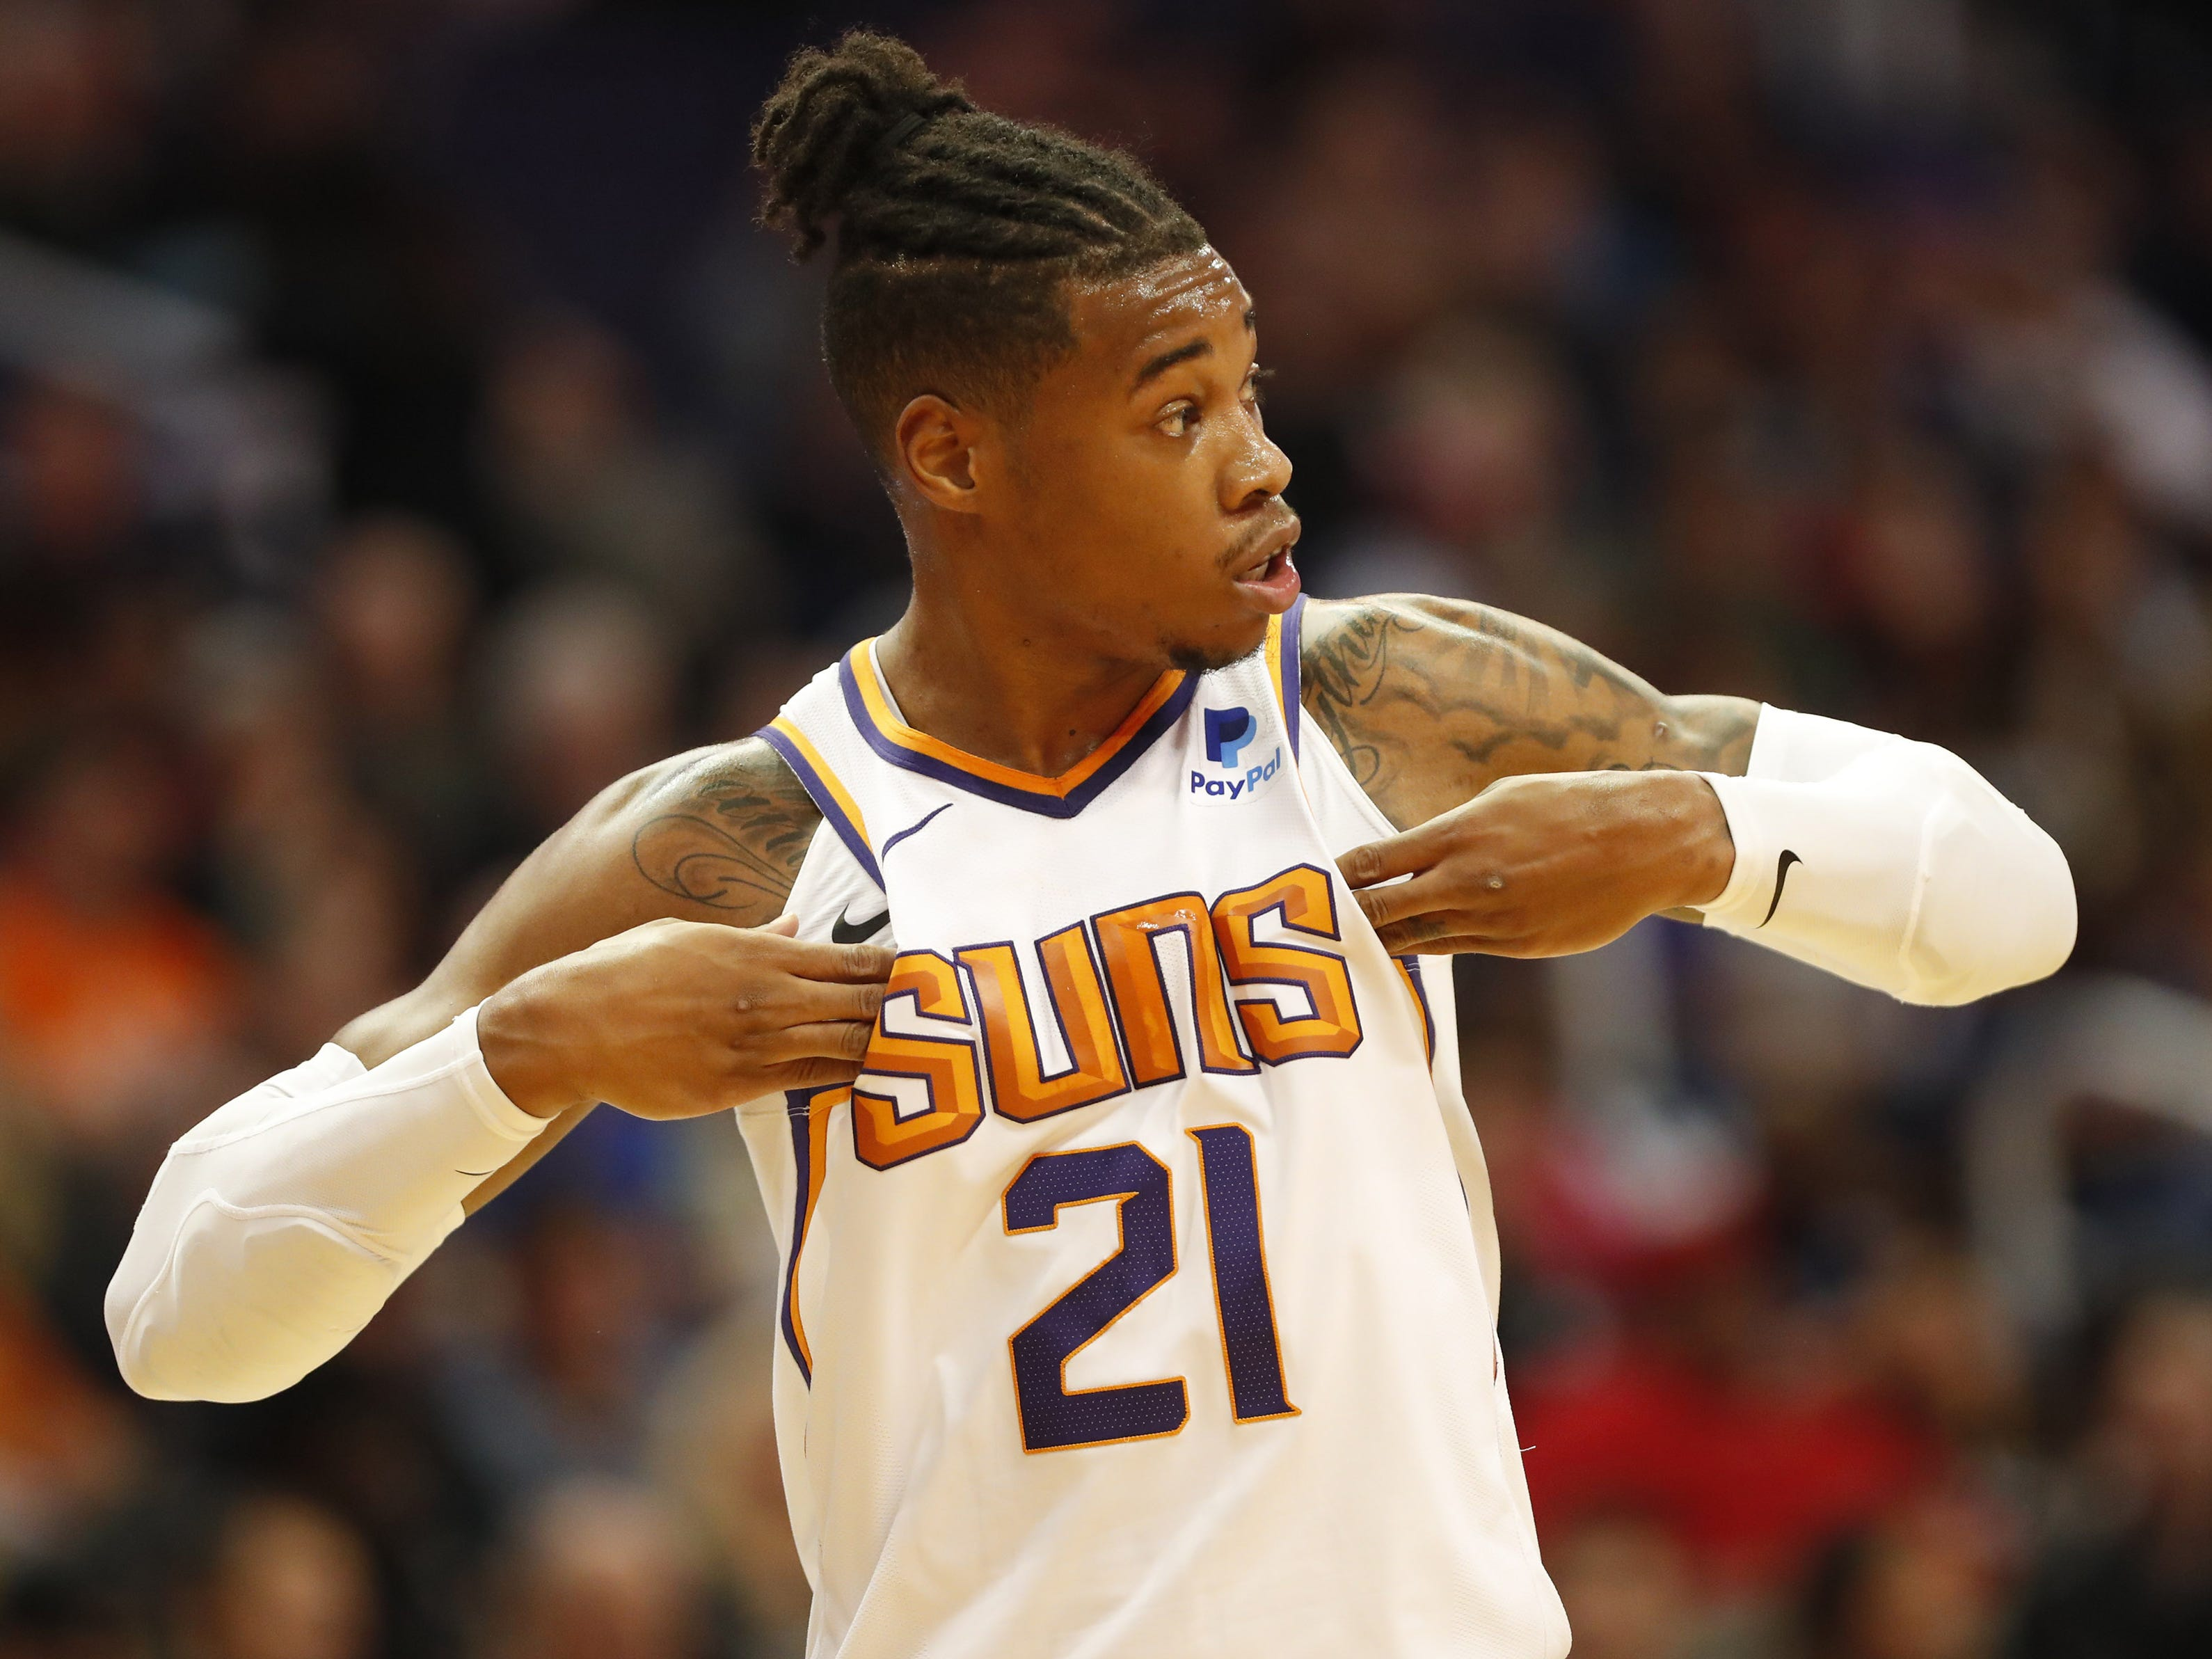 Phoenix Suns forward Richaun Holmes (21) checks into the game against the Indiana Pacers during the second quarter November 27.